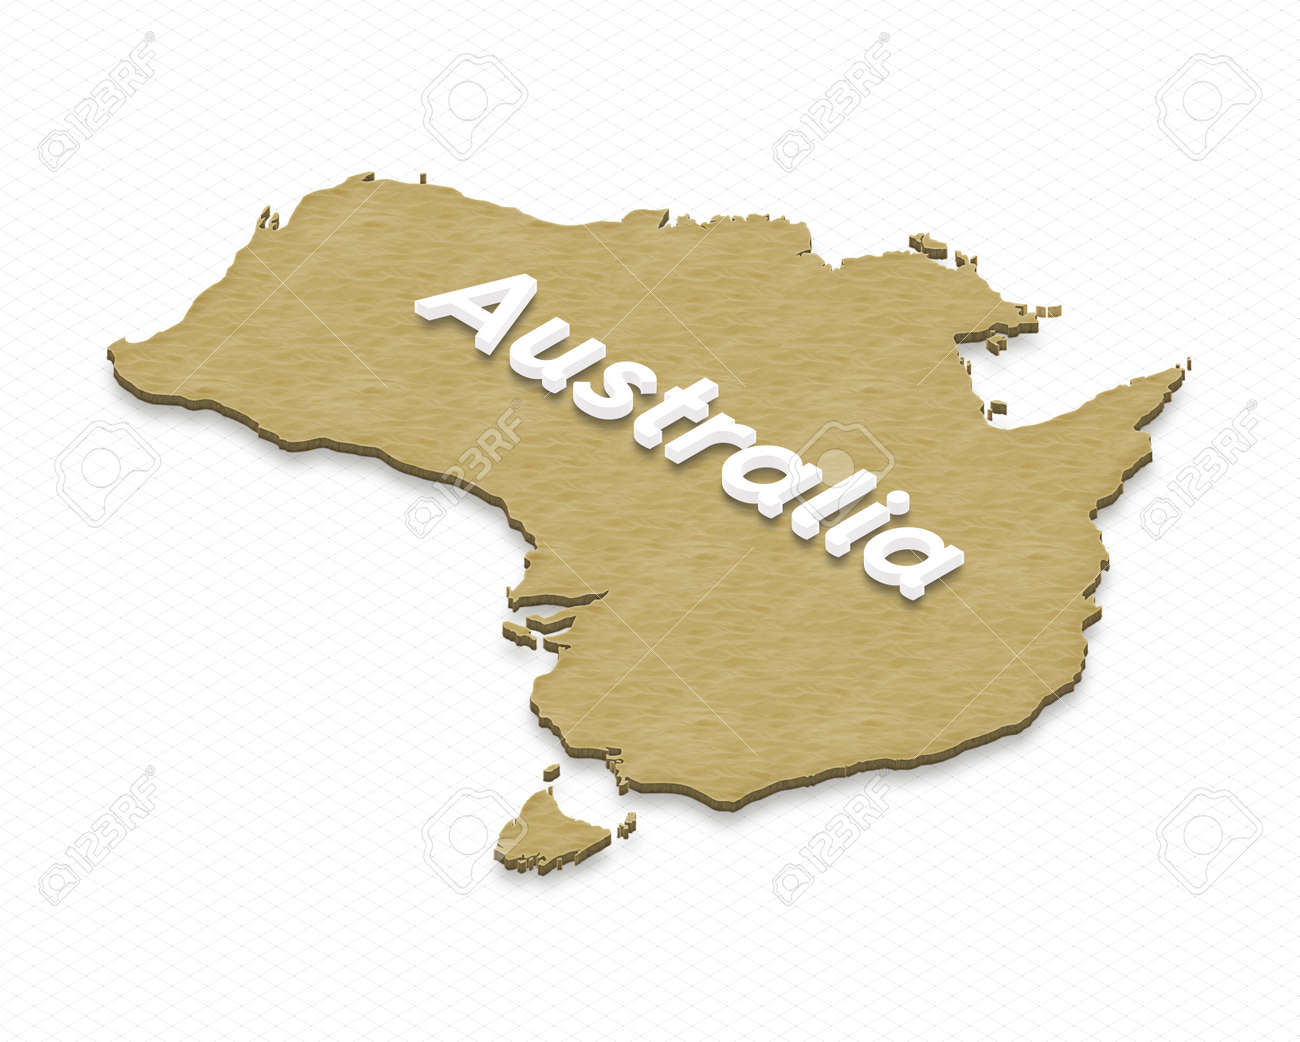 Illustration of a sand ground map of australia on grid background illustration illustration of a sand ground map of australia on grid background left 3d isometric projection with the name of continent gumiabroncs Gallery